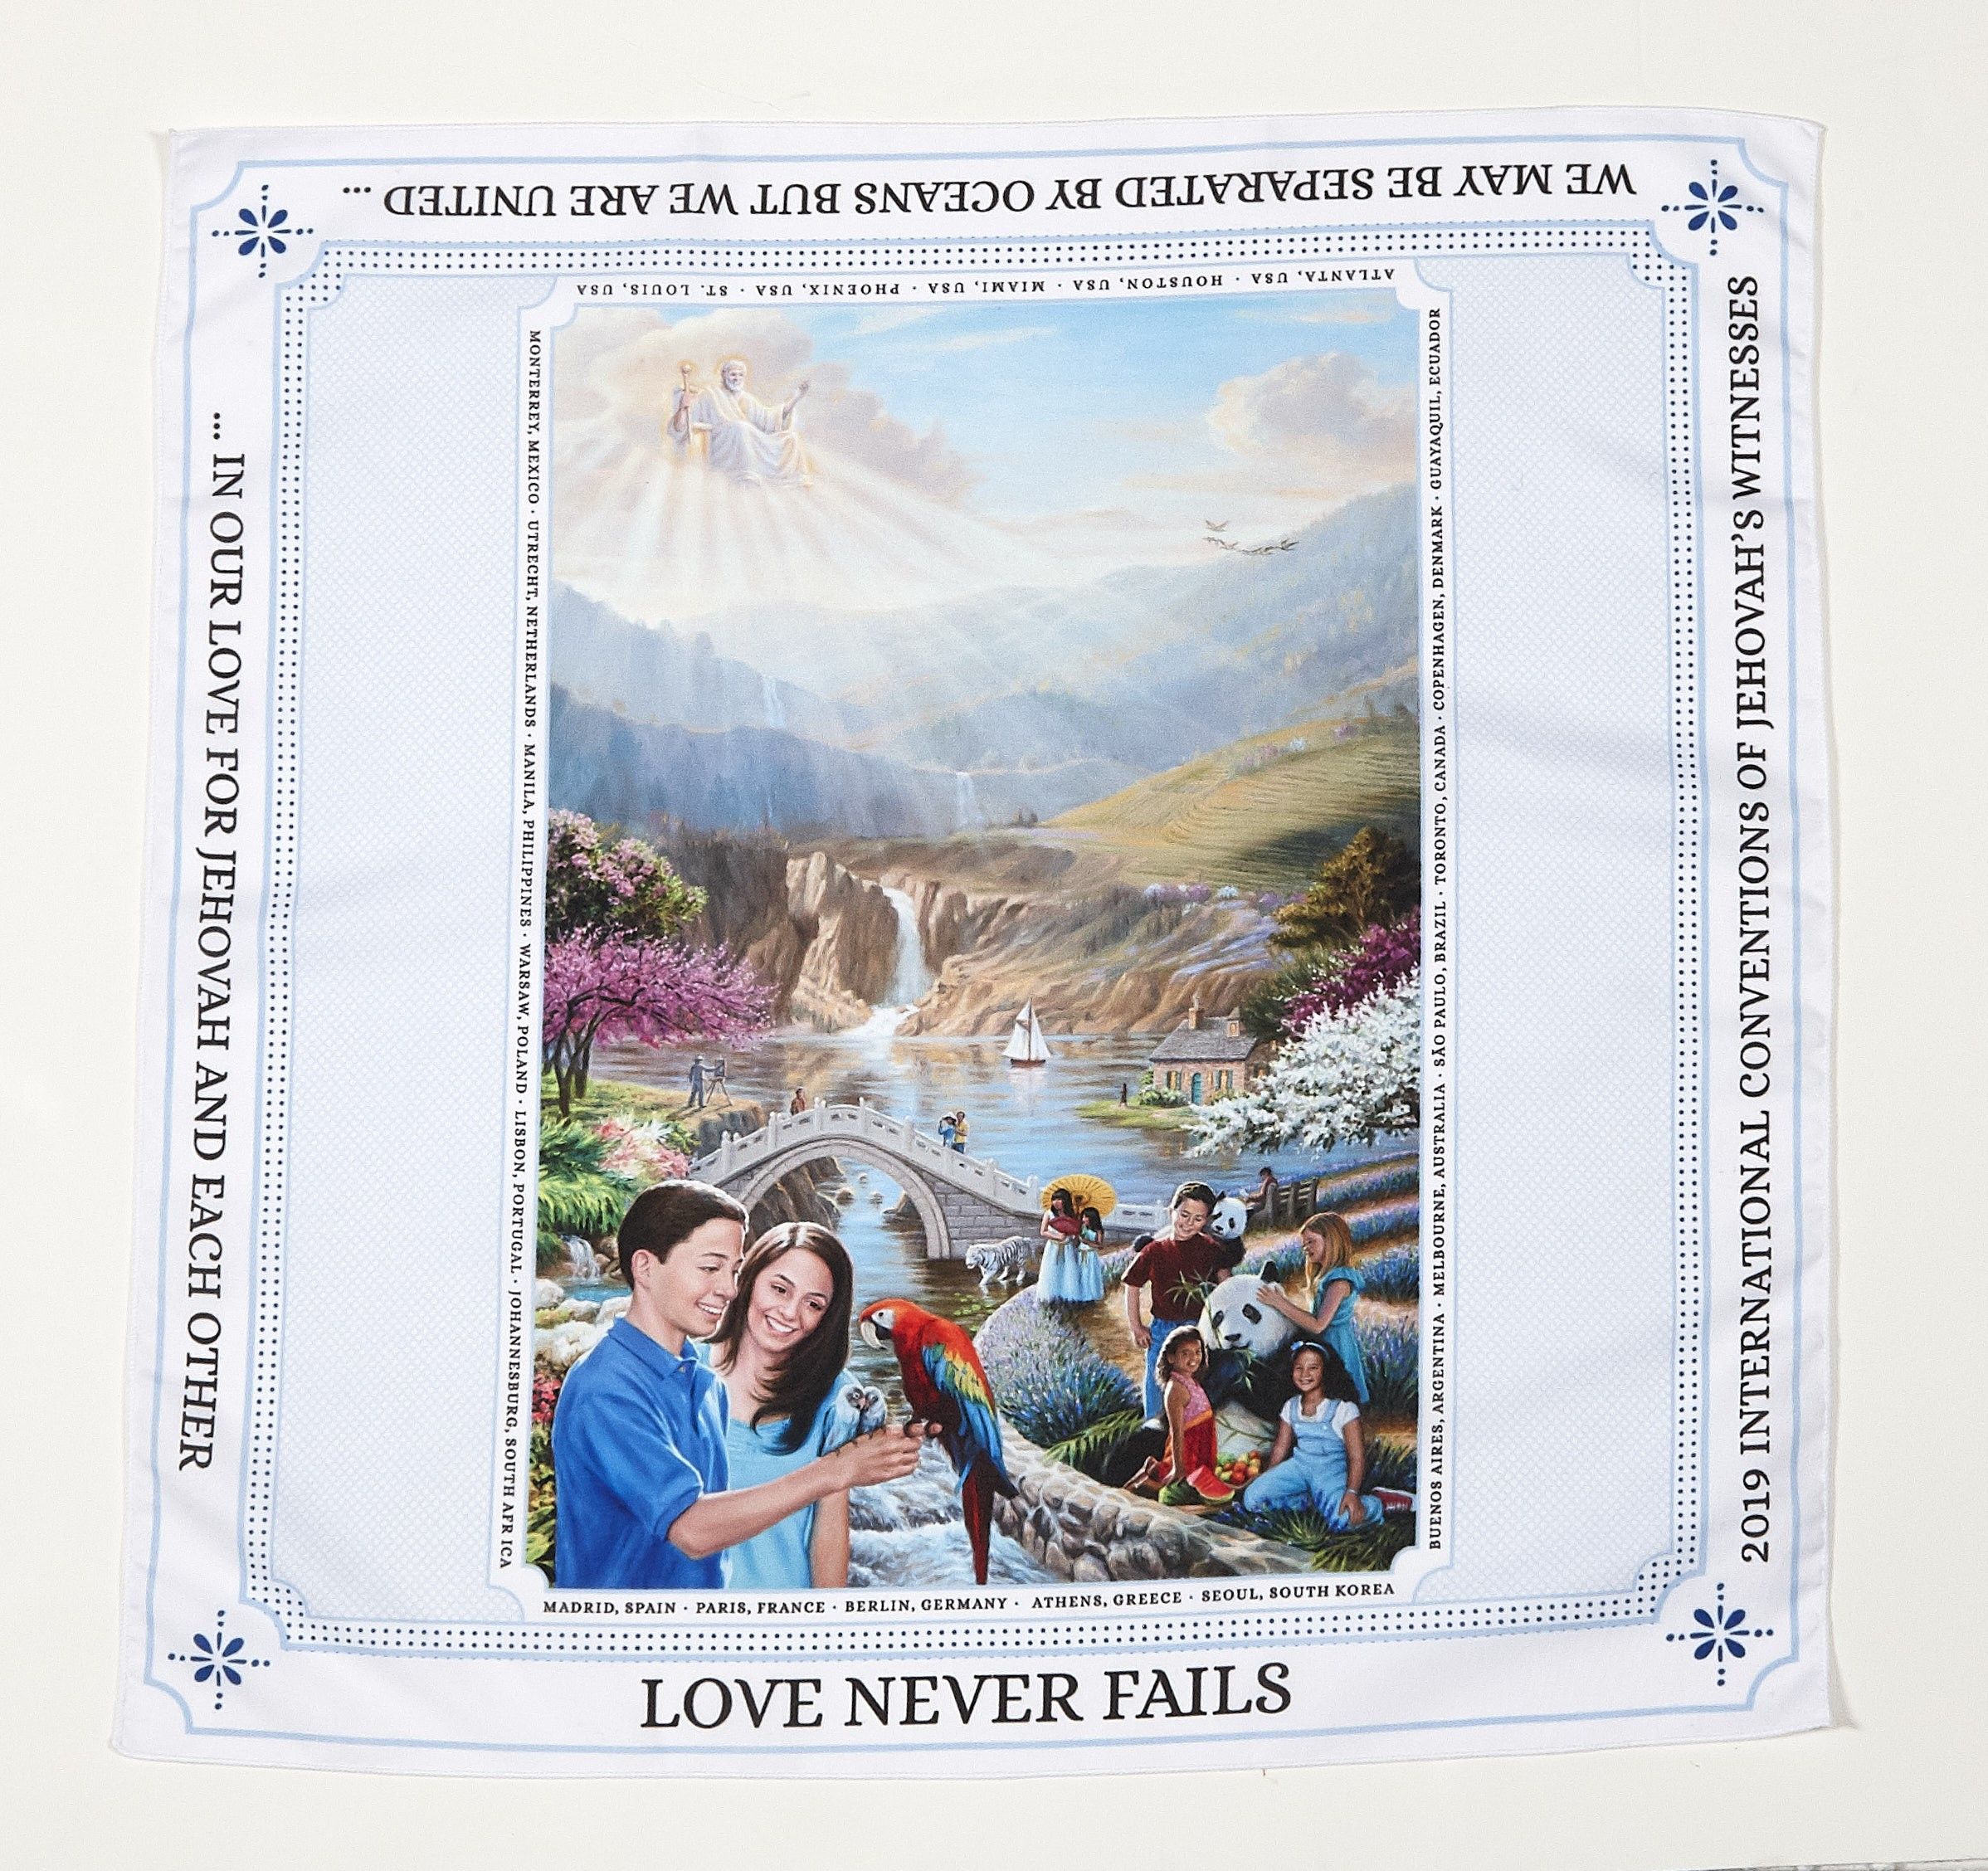 2019 International Convention Bandana (NO DISCOUNT ON THIS ITEM)